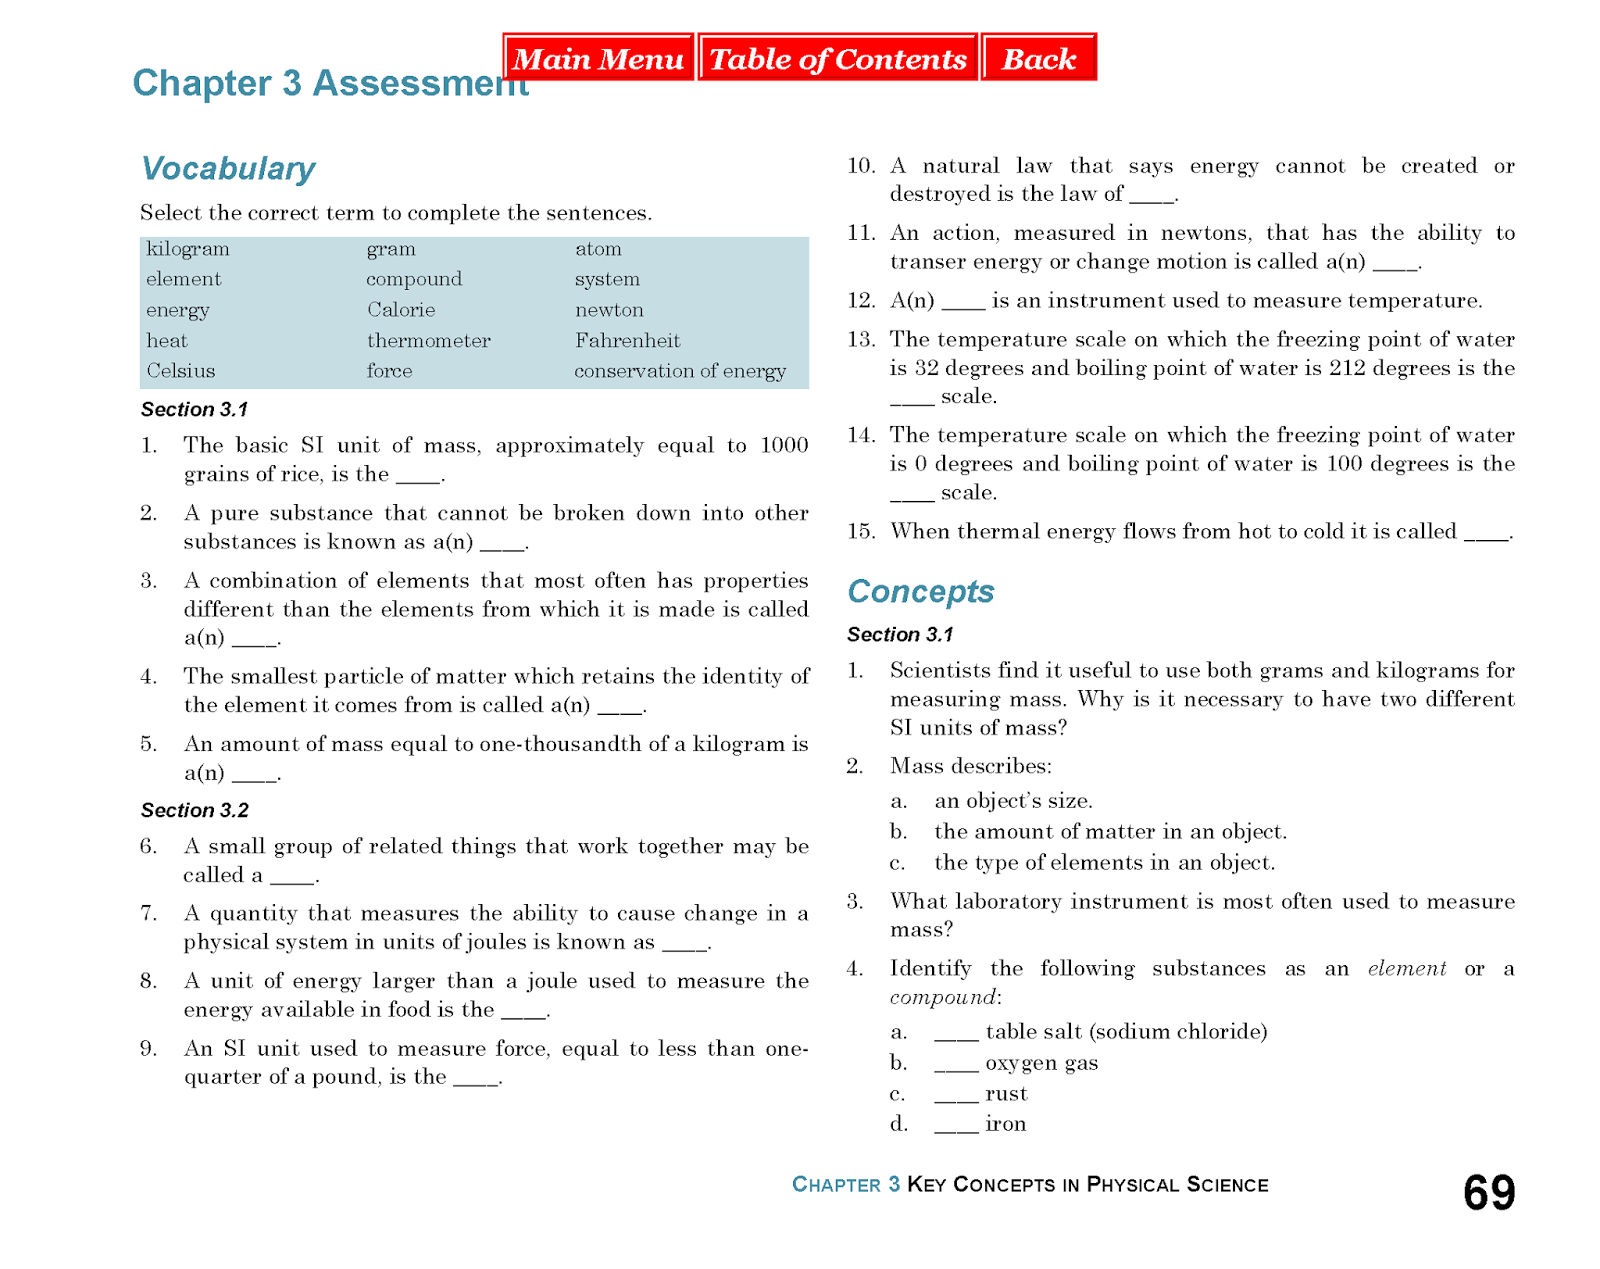 Physical Science Textbook Answer Key